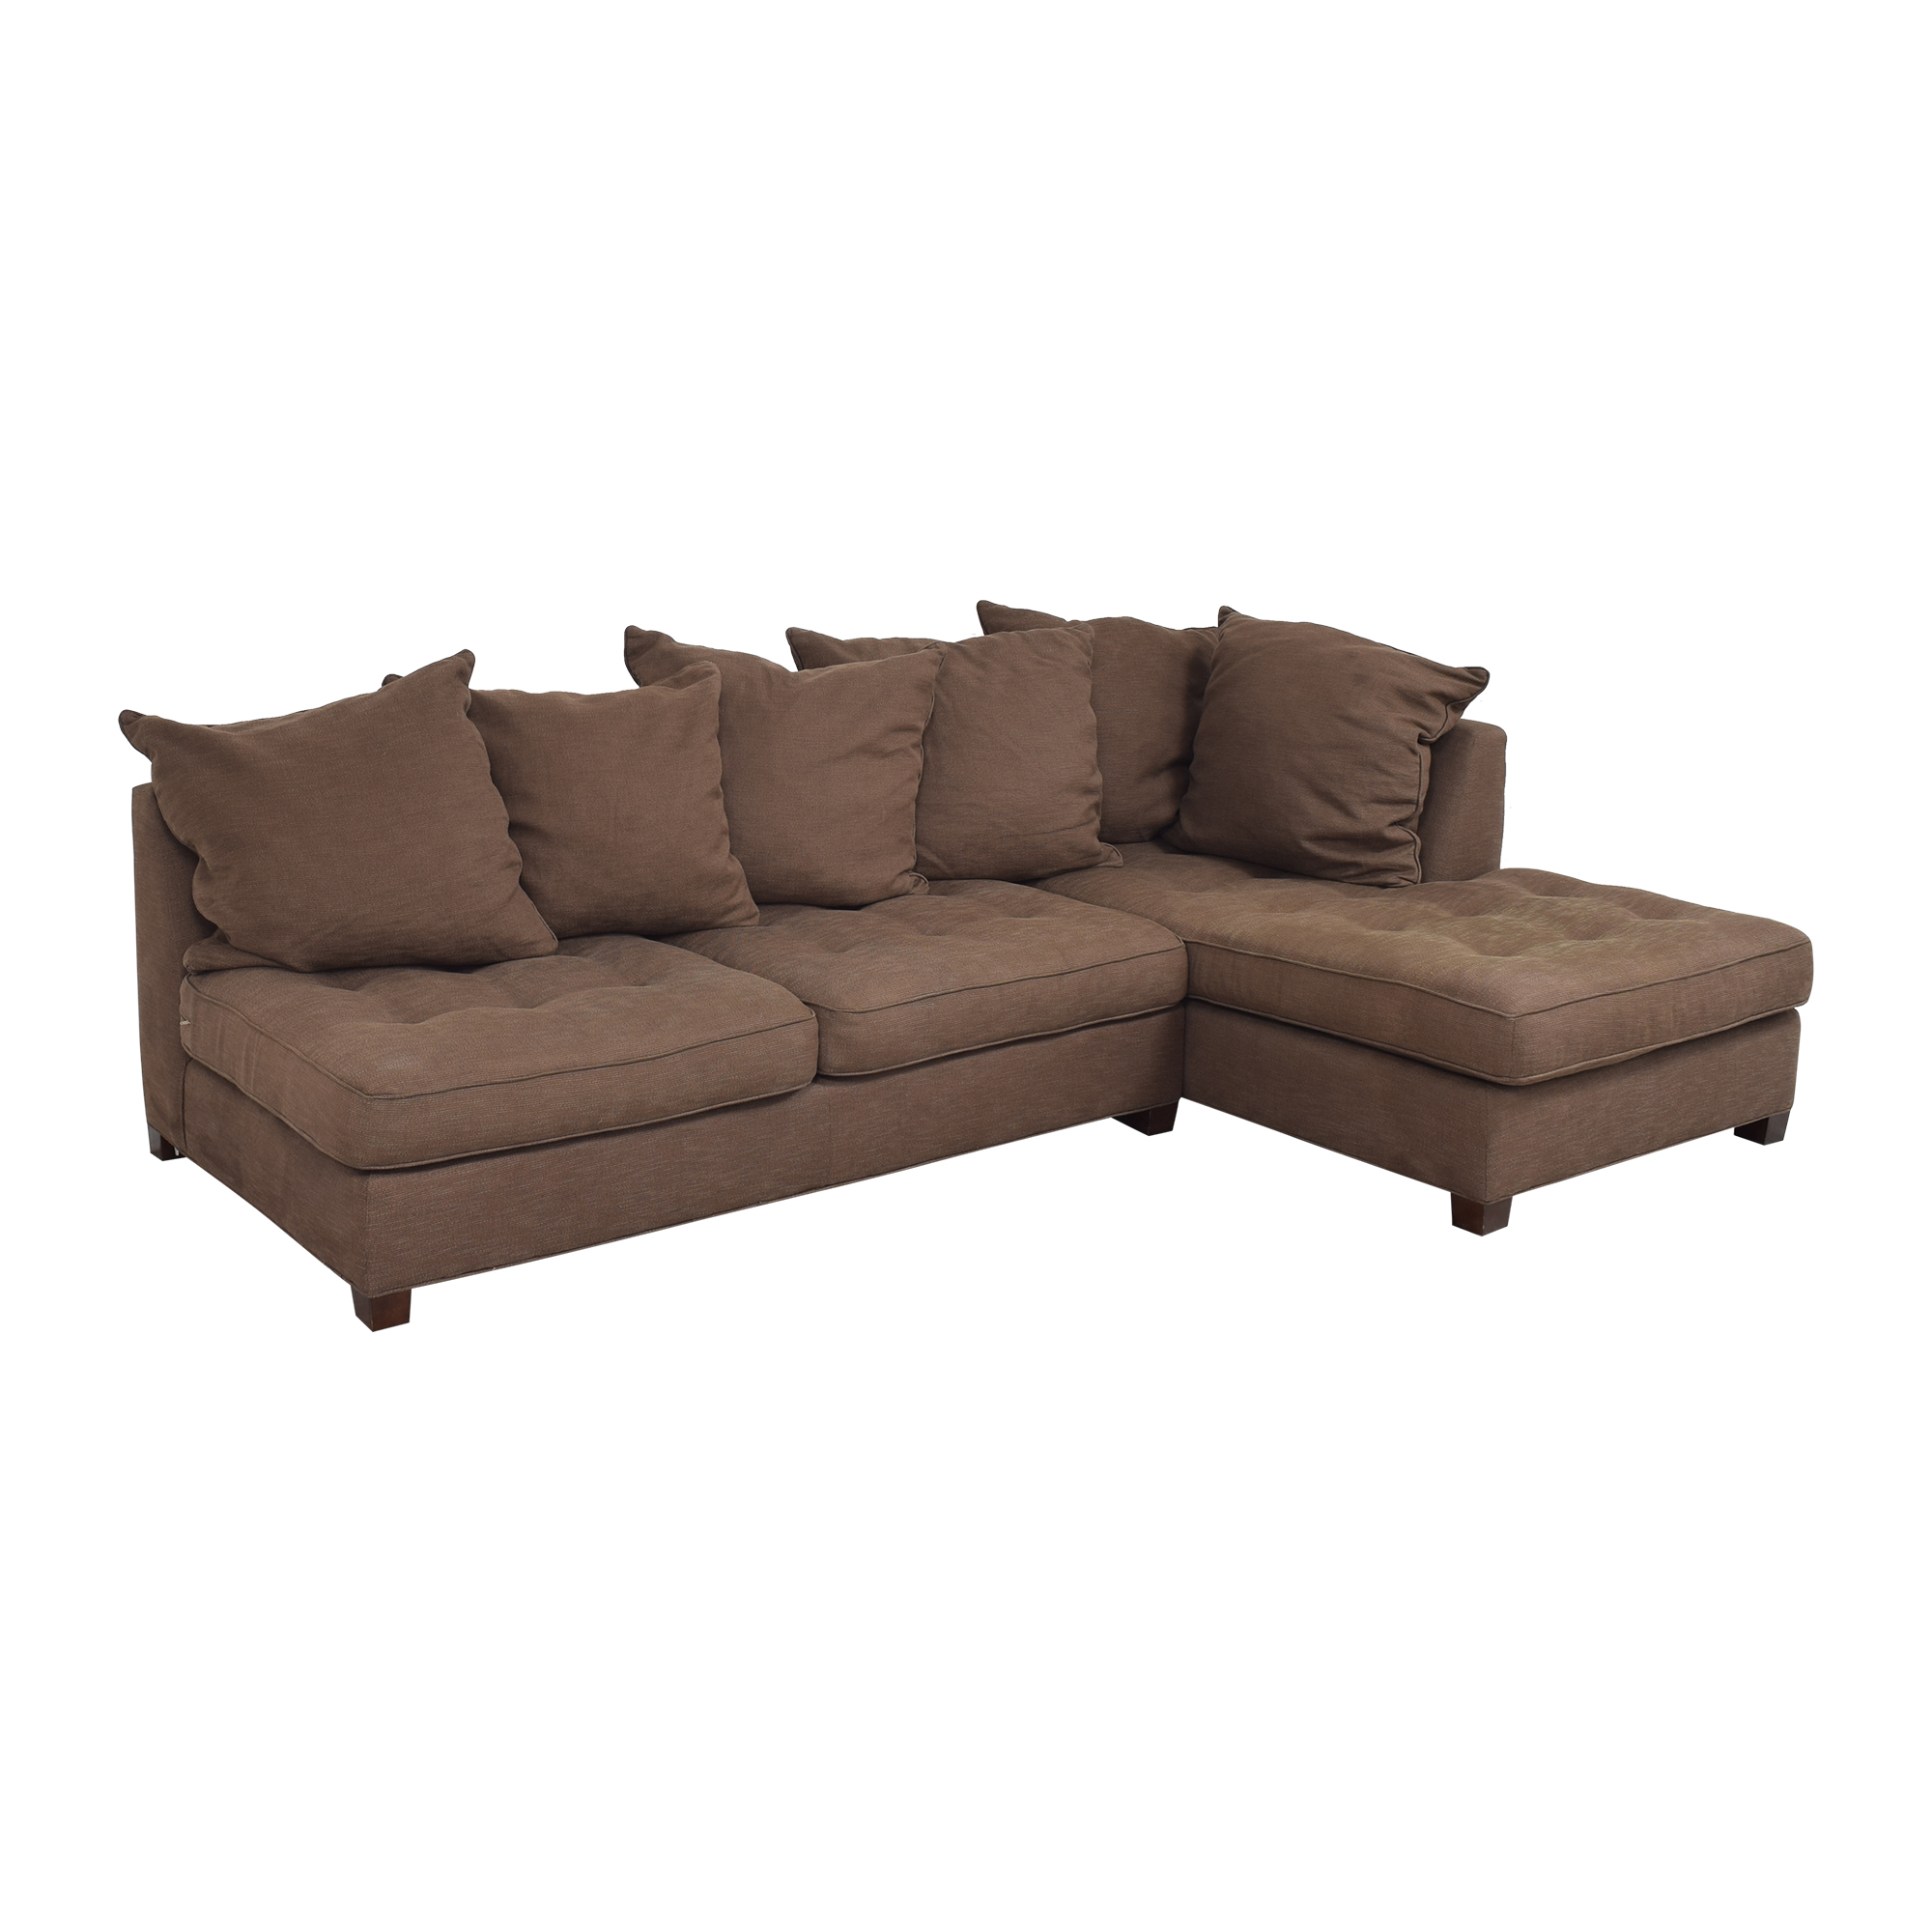 Pottery Barn Pottery Barn Sectional Sofa with Chaise dimensions